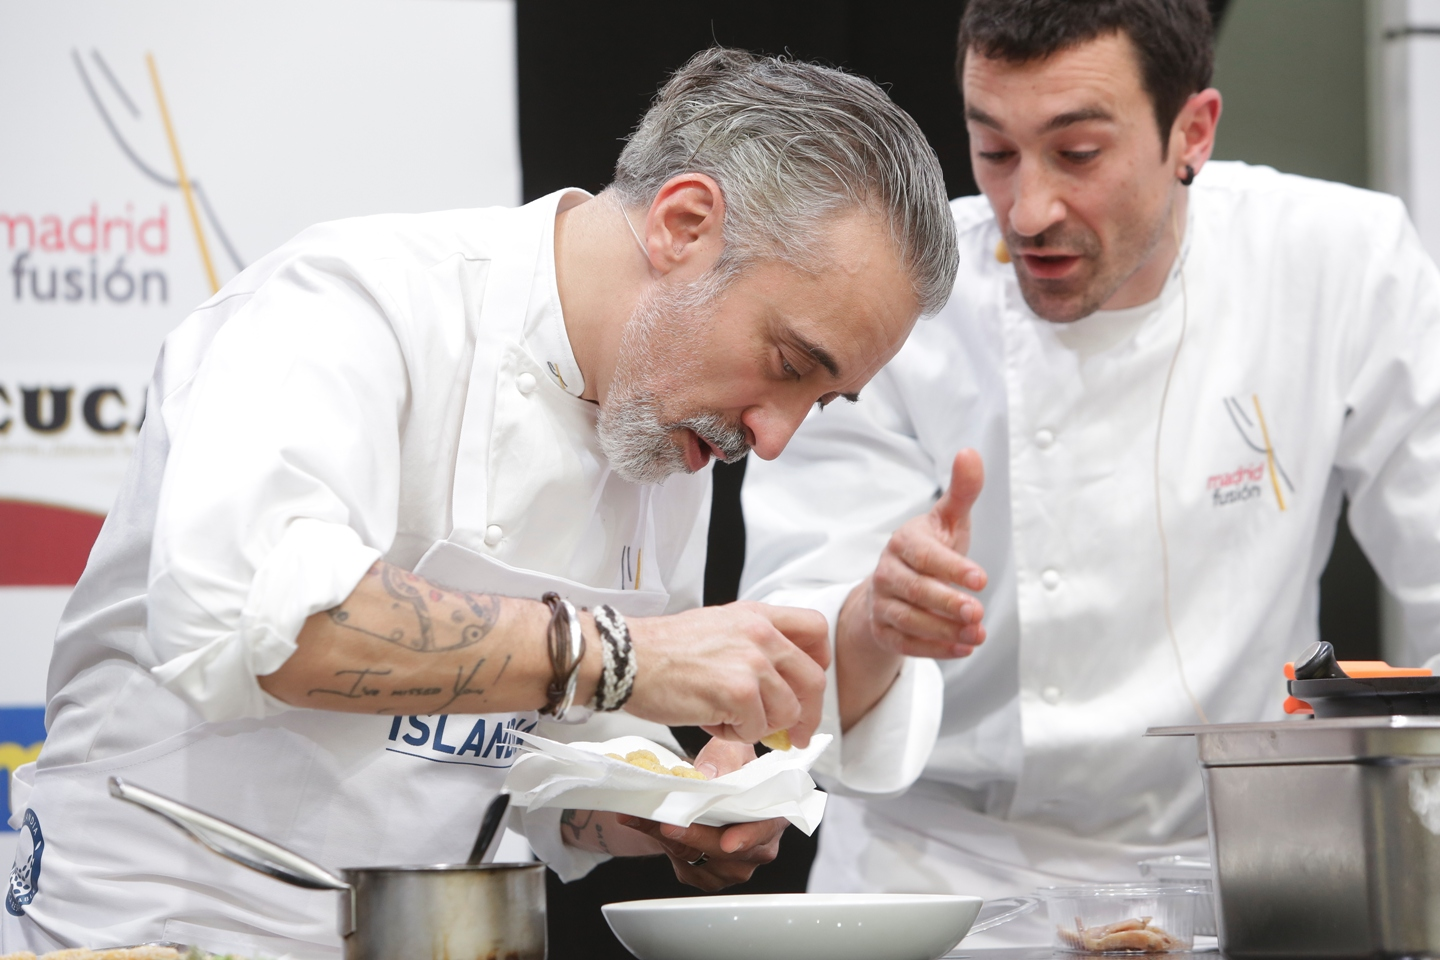 Spanish Michelin starred chefs appreciate salted cod from Iceland